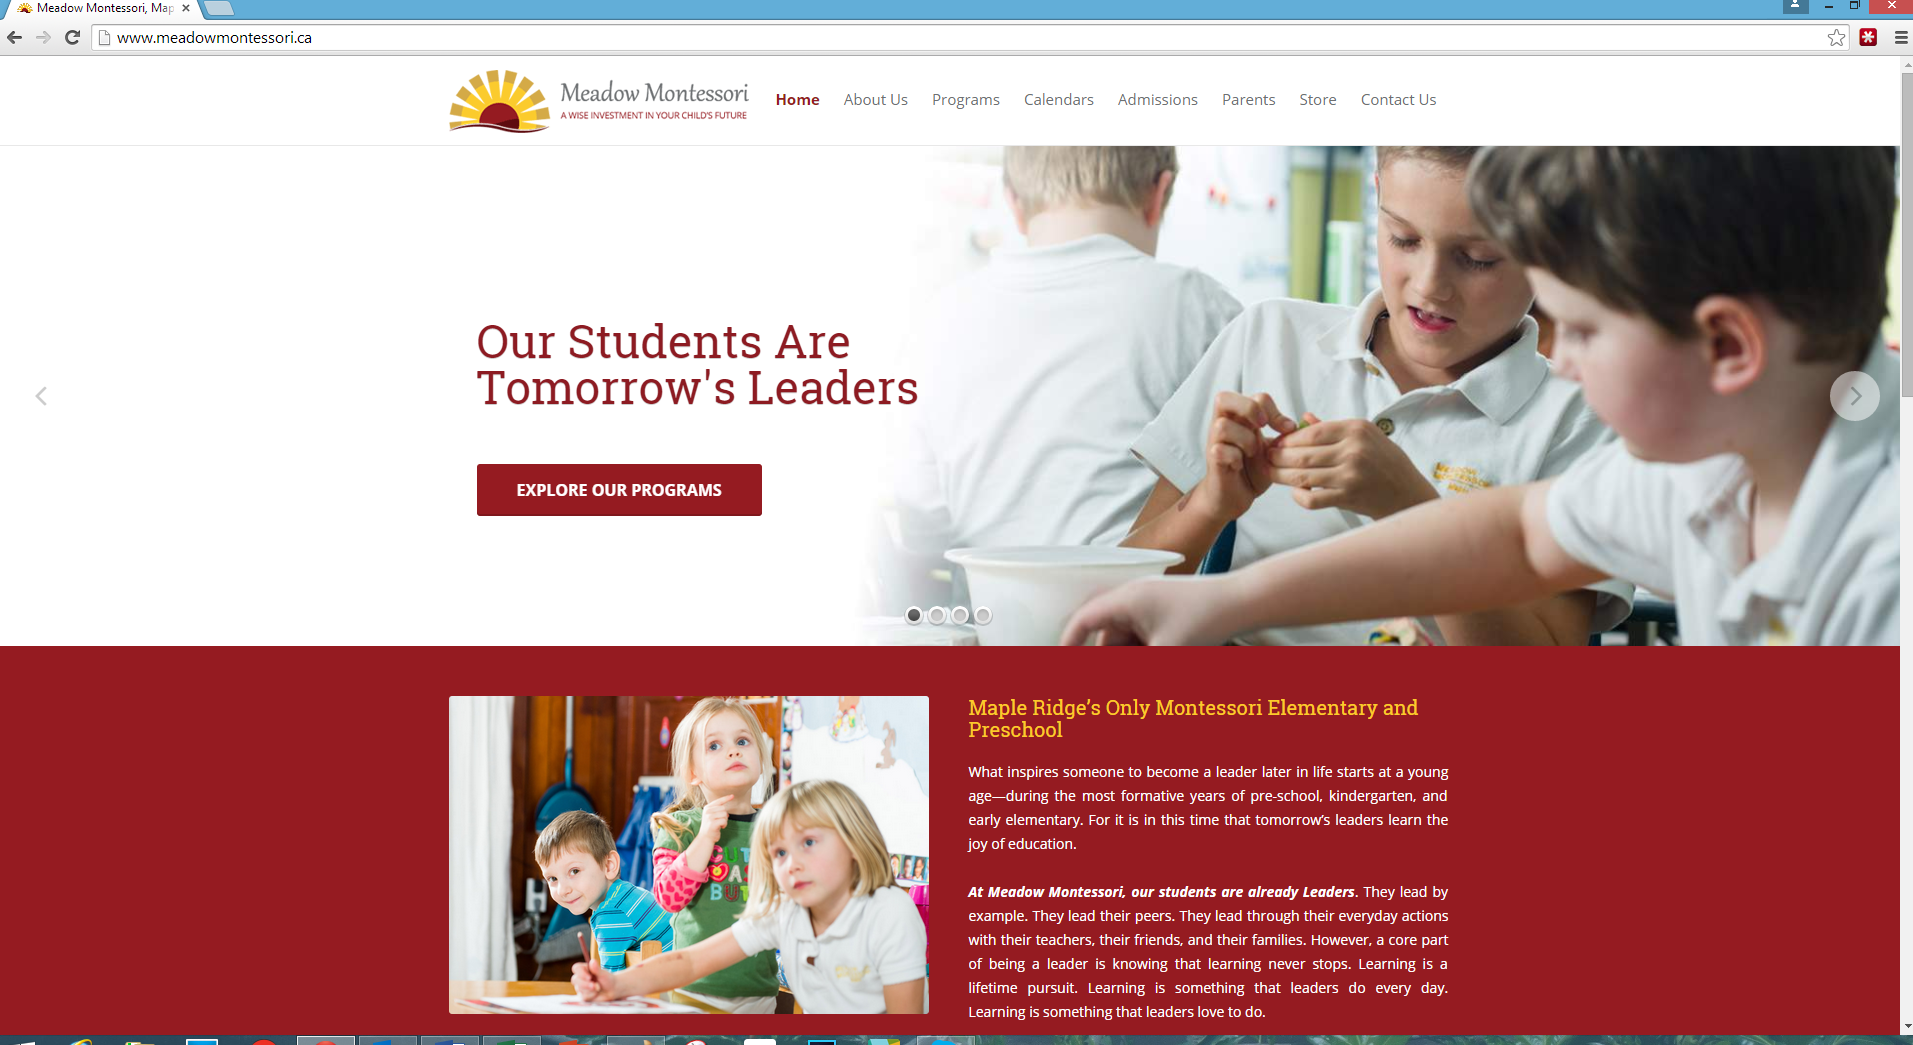 Meadow Montessori Website